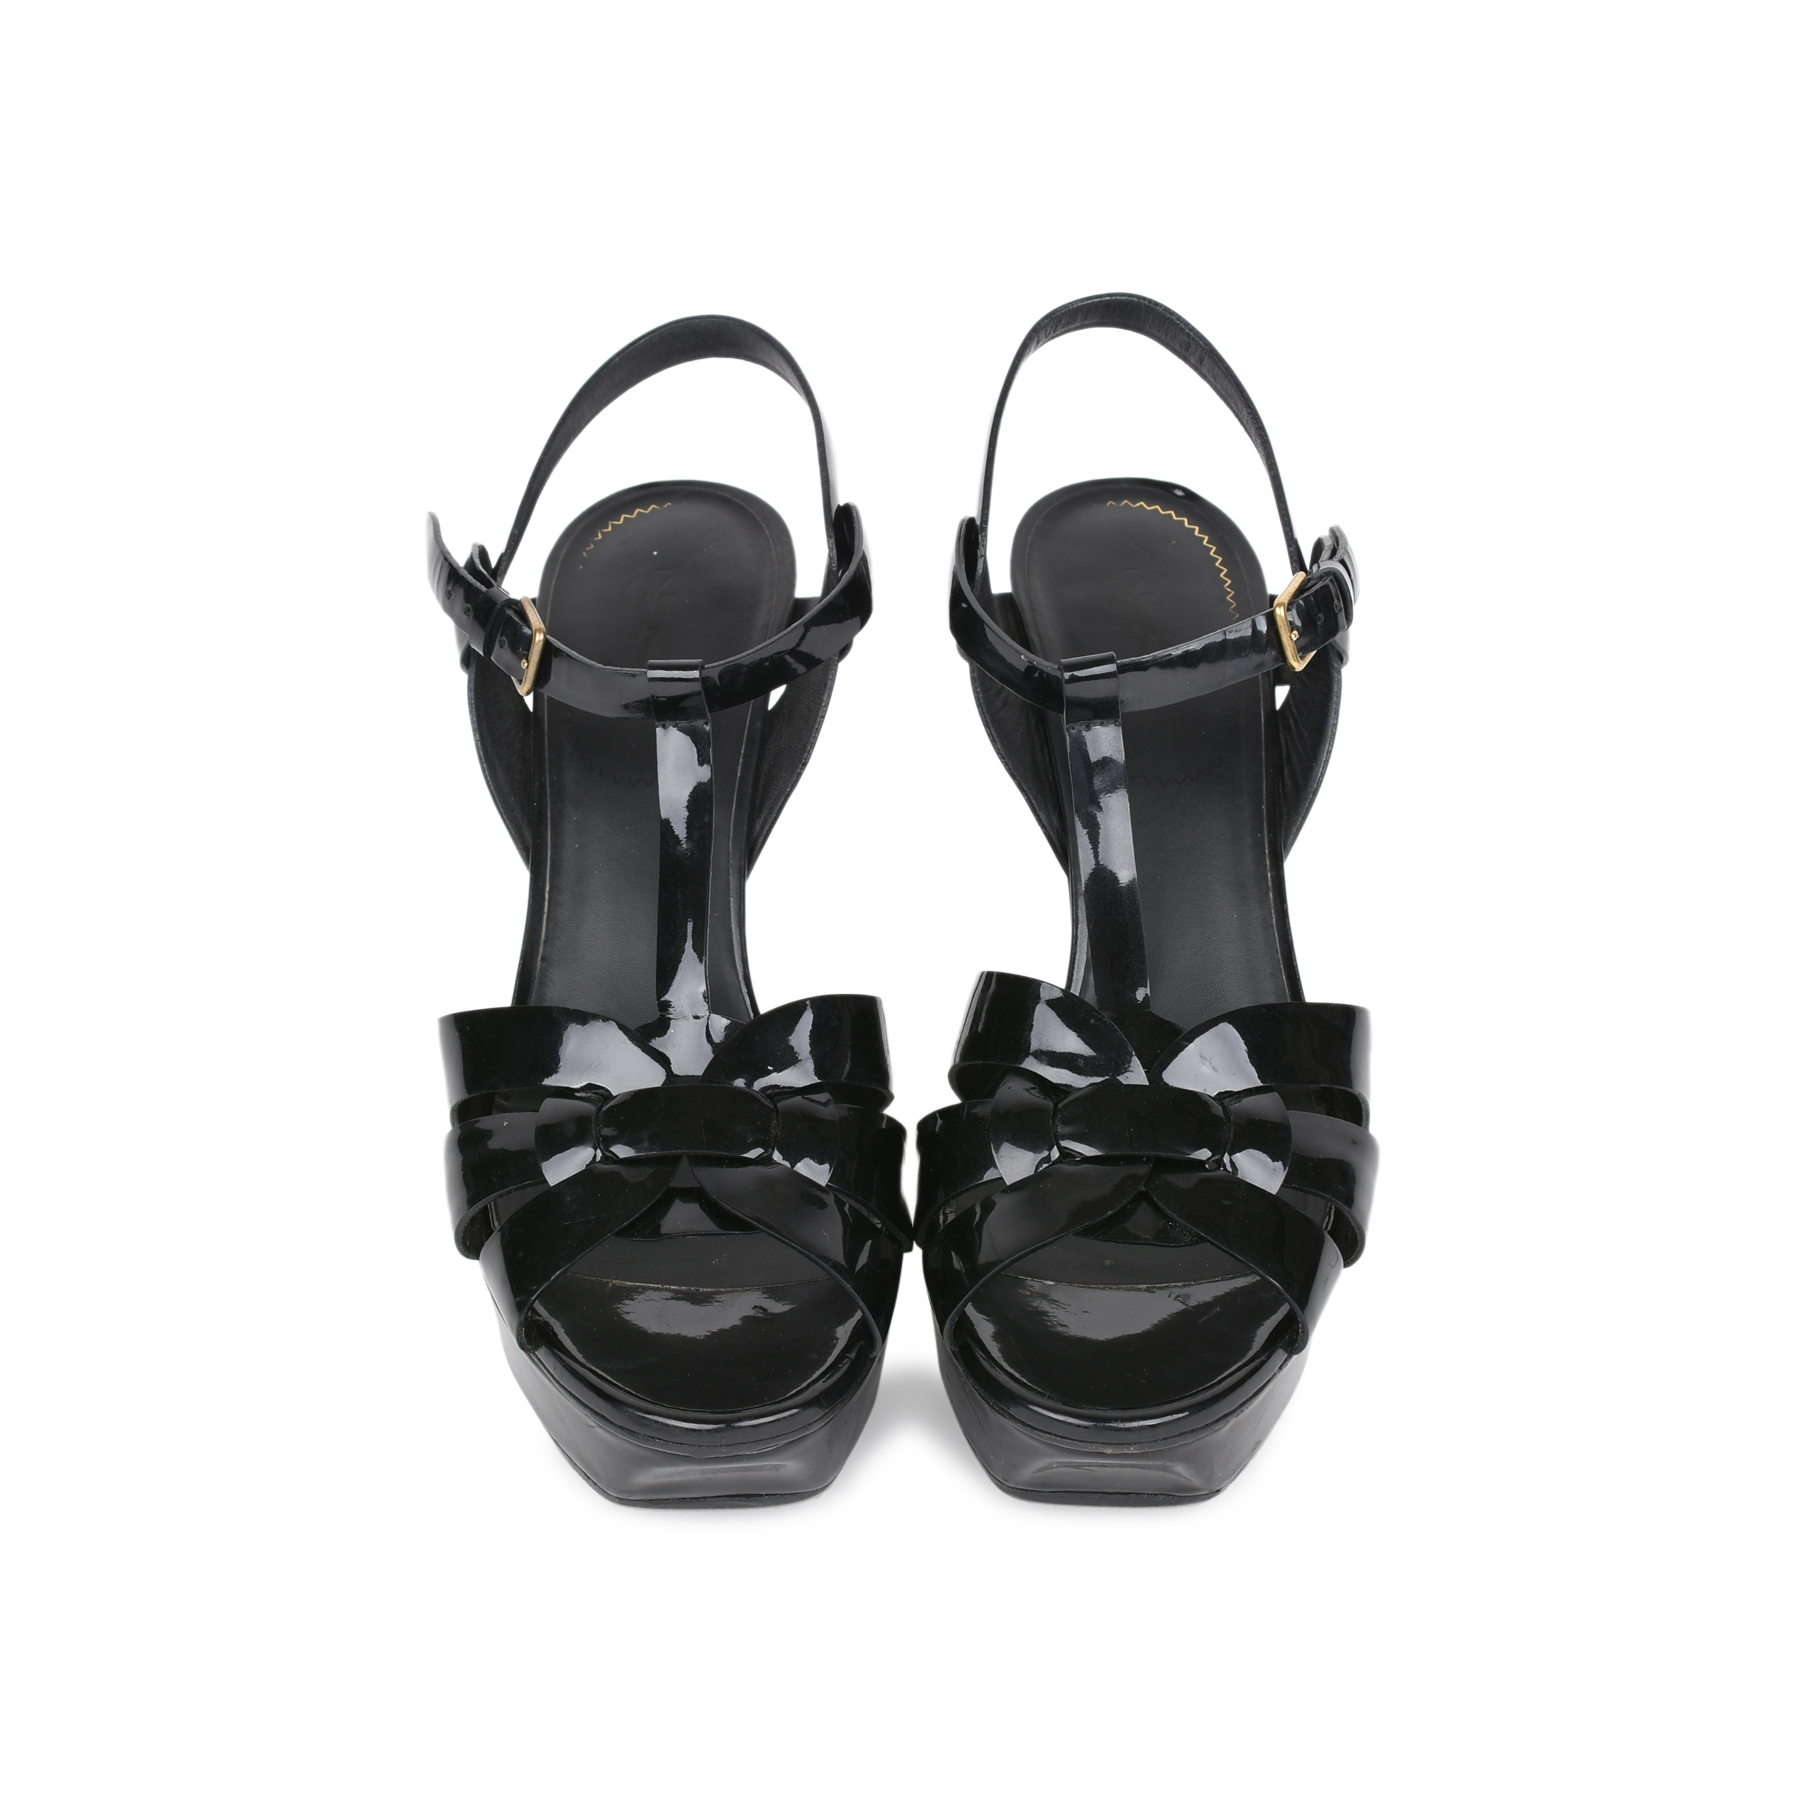 455b5536745 Authentic Second Hand Yves Saint Laurent Patent Tribute Sandals  (PSS-532-00004) - THE FIFTH COLLECTION